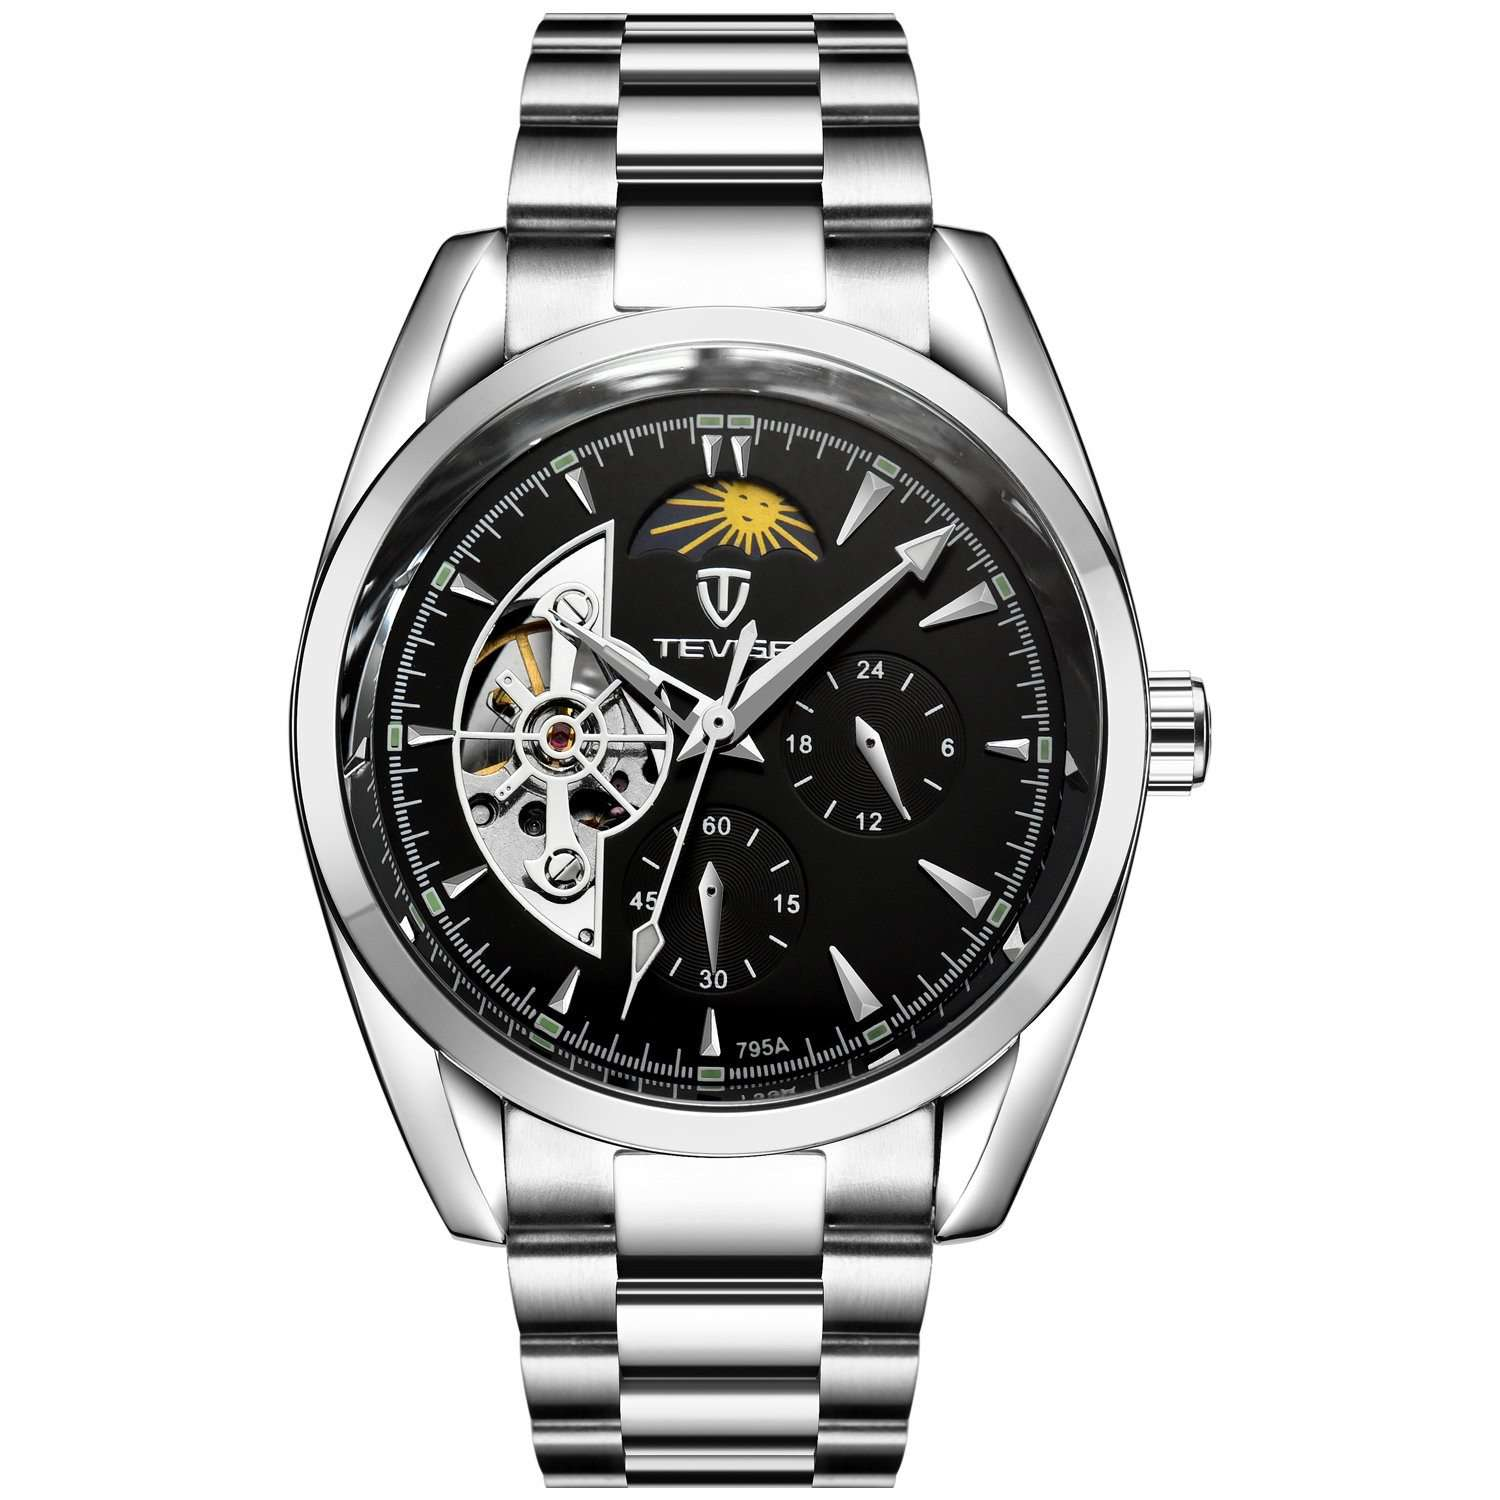 TEVISE 795A Silver/Black Automatic Men's Watch